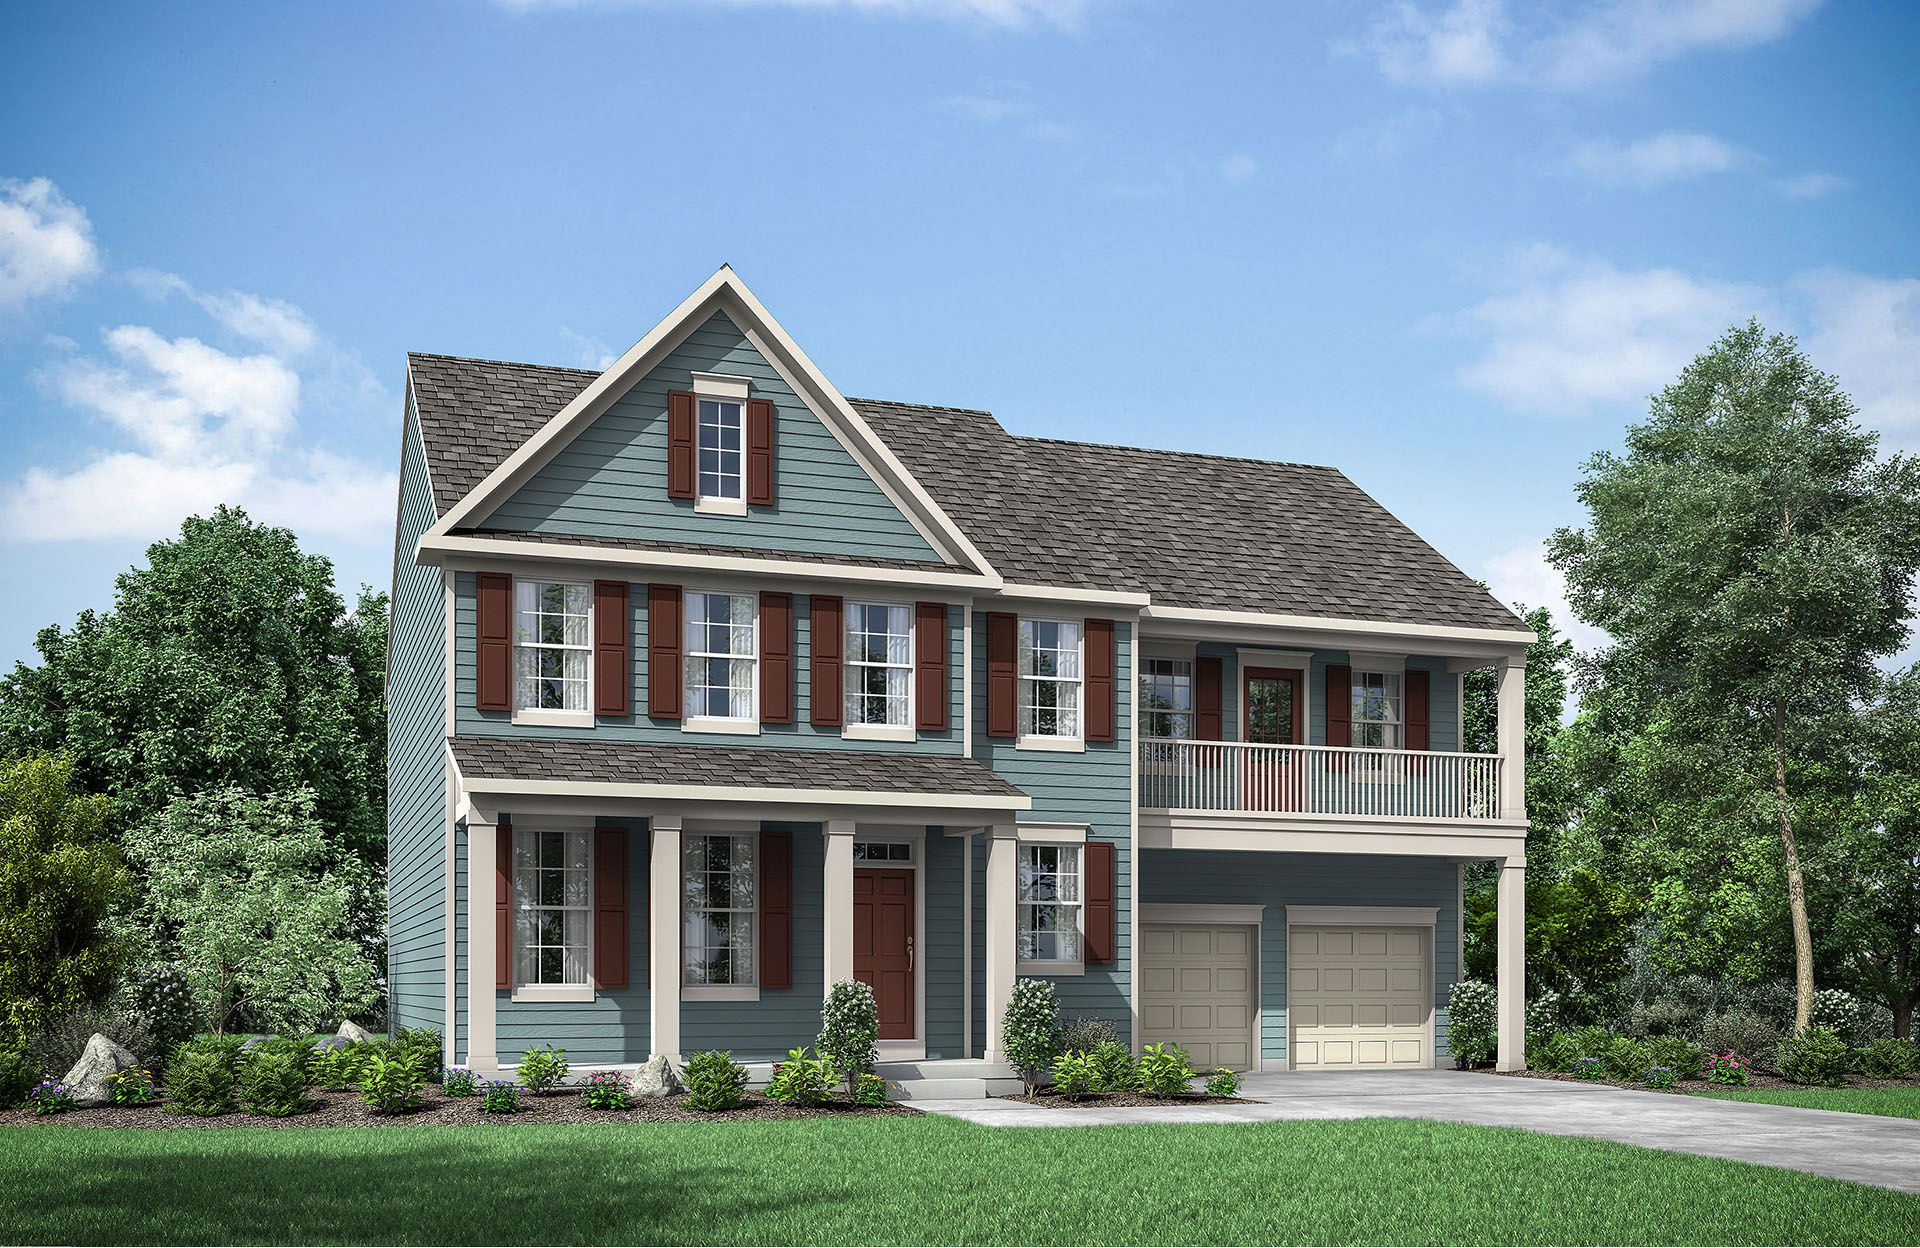 Single Family for Active at Ainsley 5511 Golden Eagle Road Frederick, Maryland 21704 United States